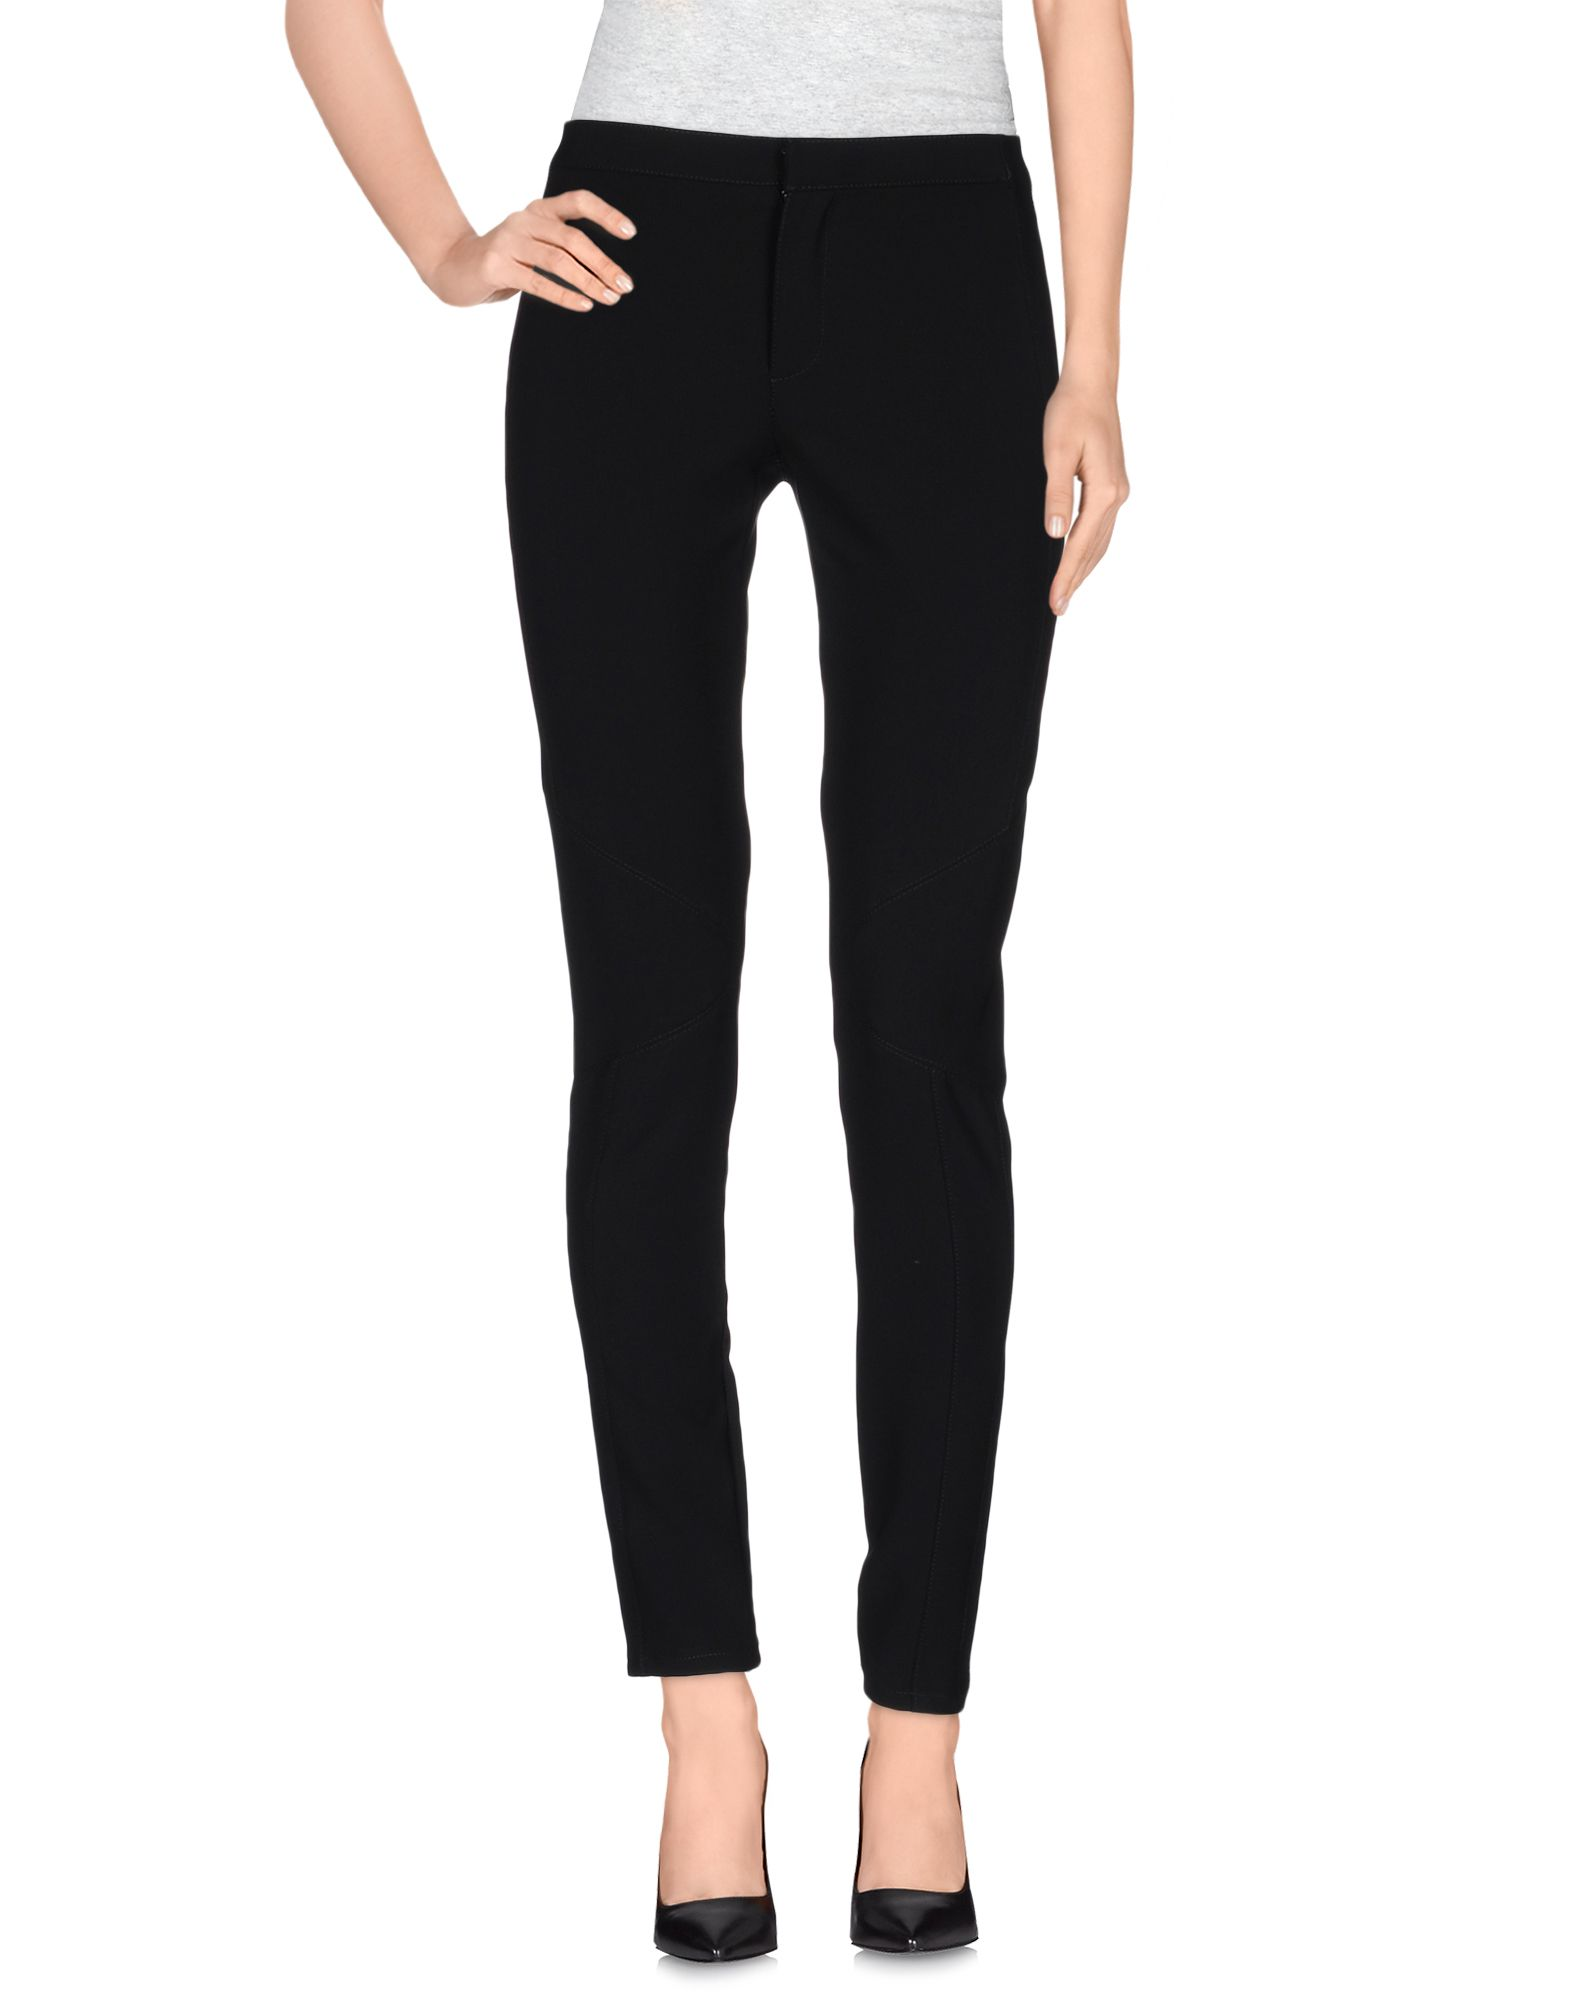 Pantalone Marc By Marc Jacobs Donna - Acquista online su wqHh8swmhN